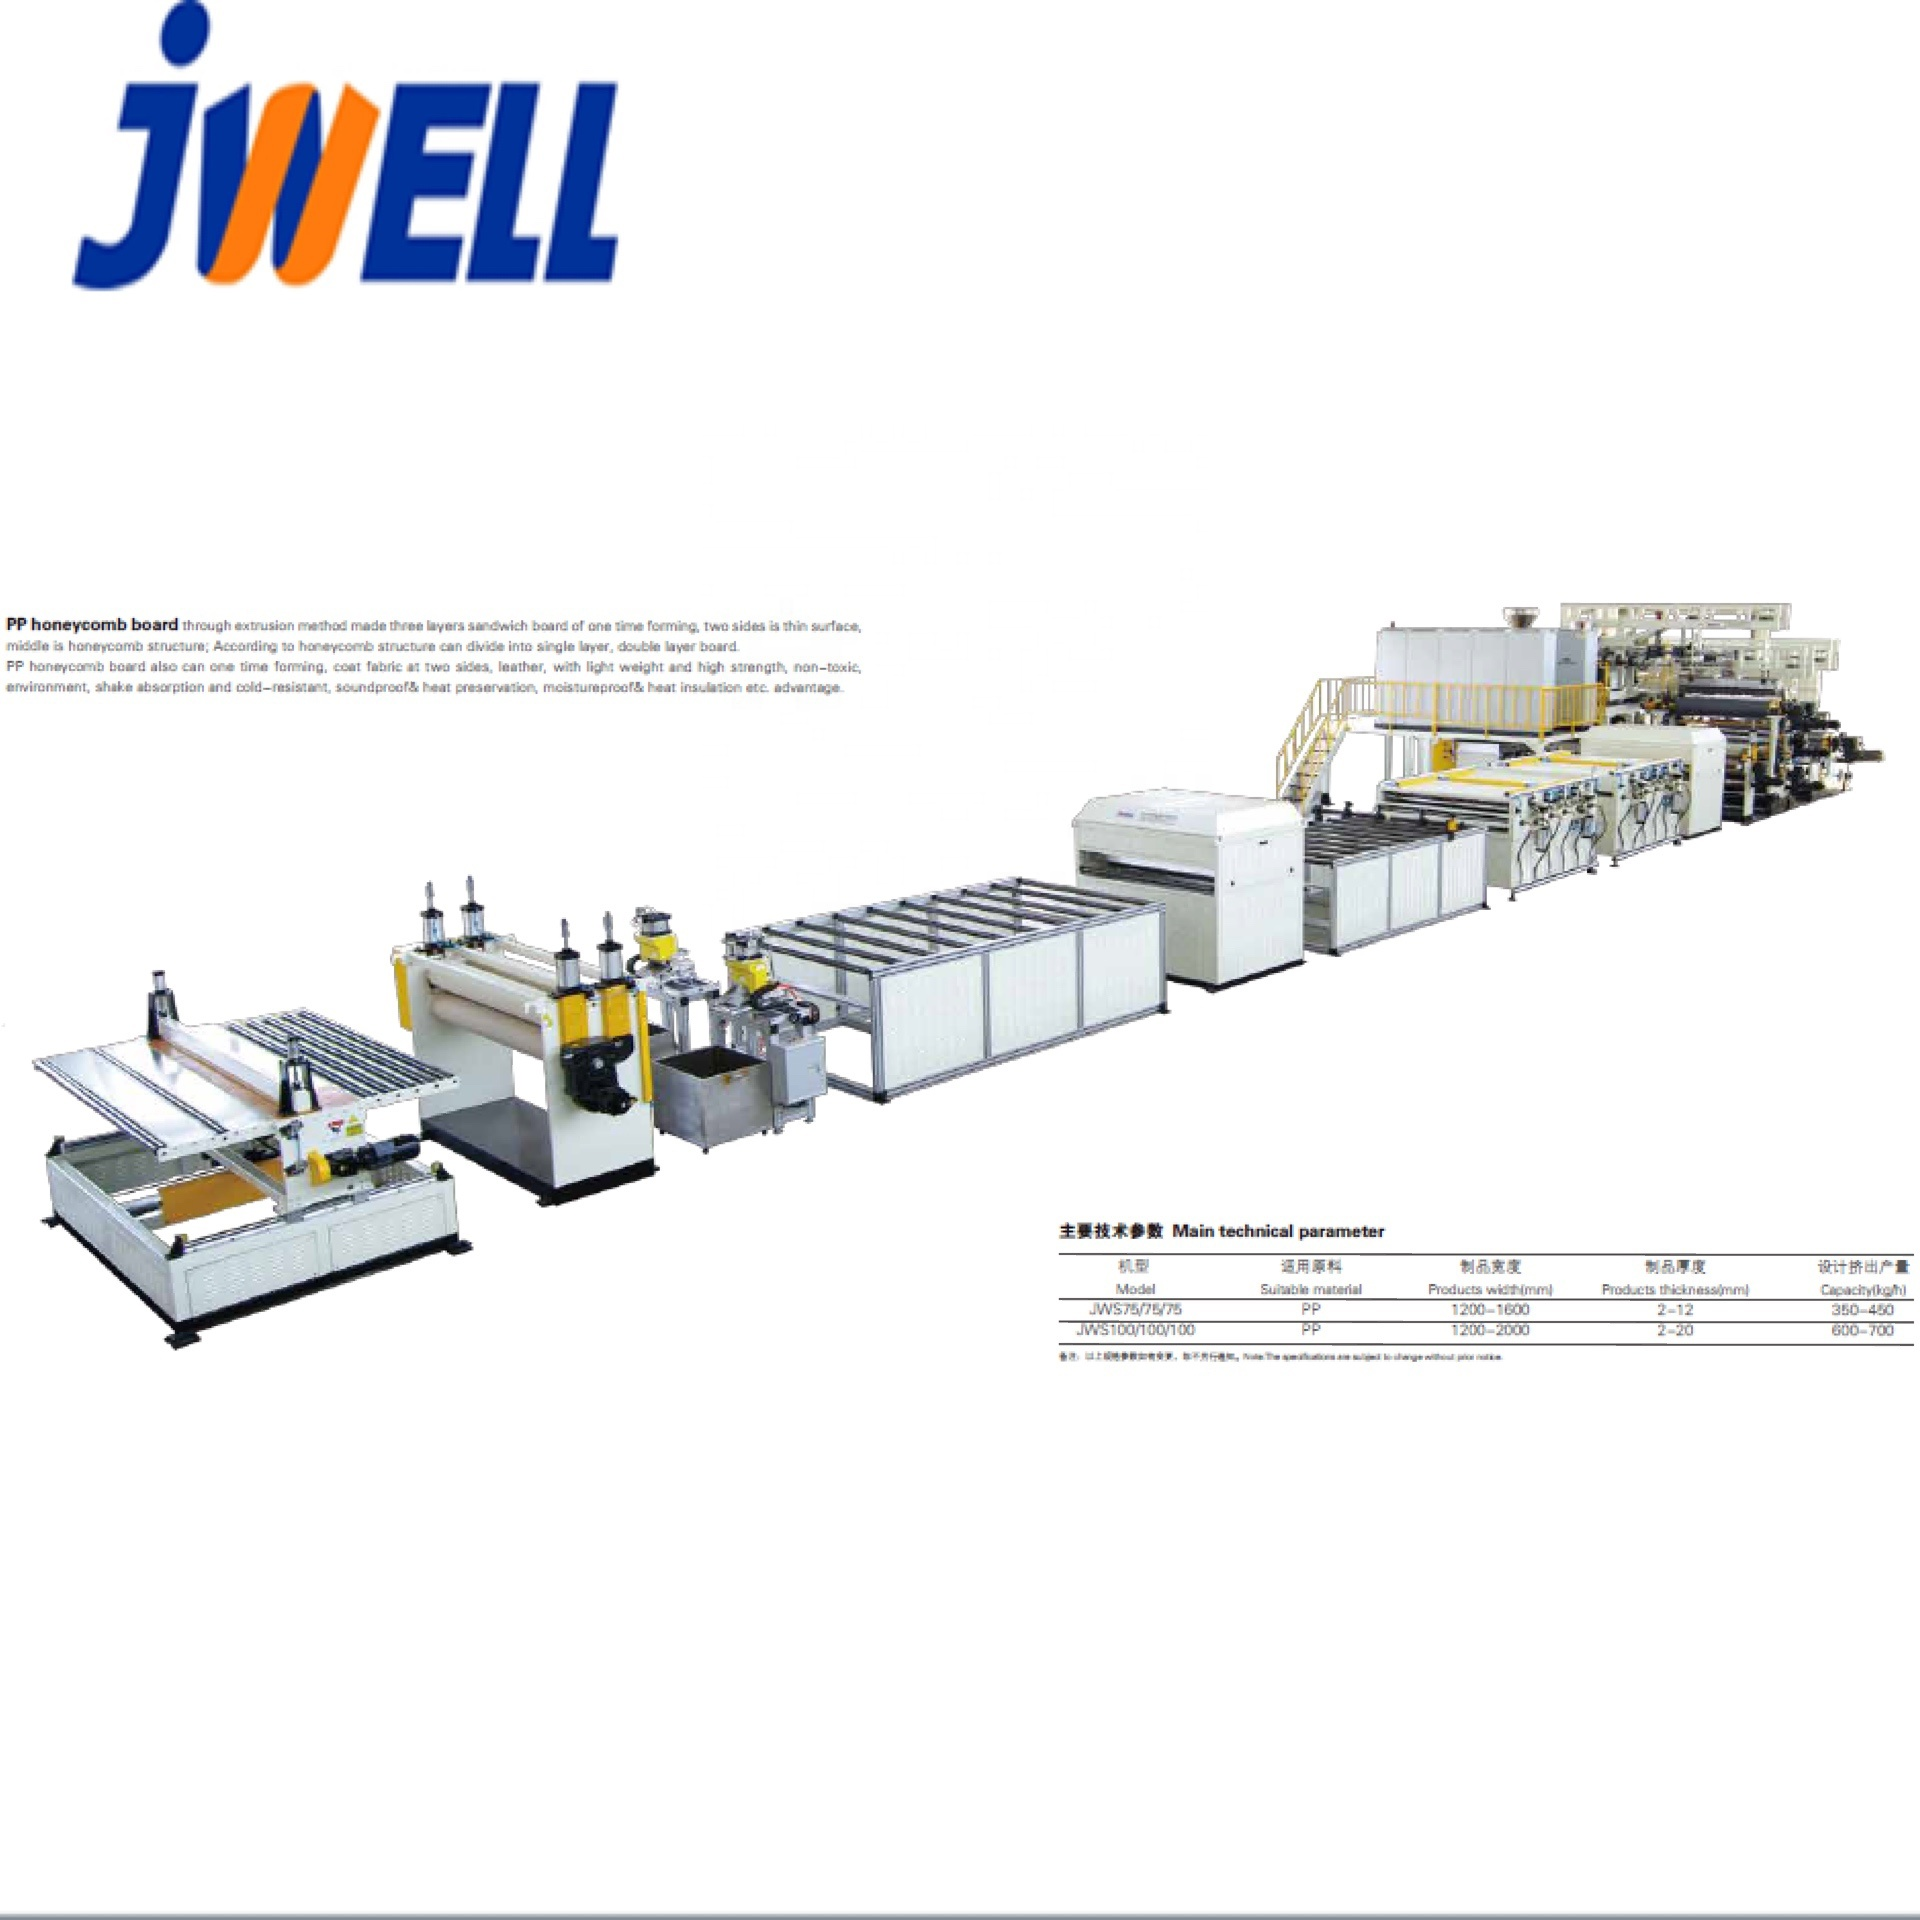 Automatic Turnover Production Line/PP Honeycomb/Bubble panel sheet plate board Making Machine